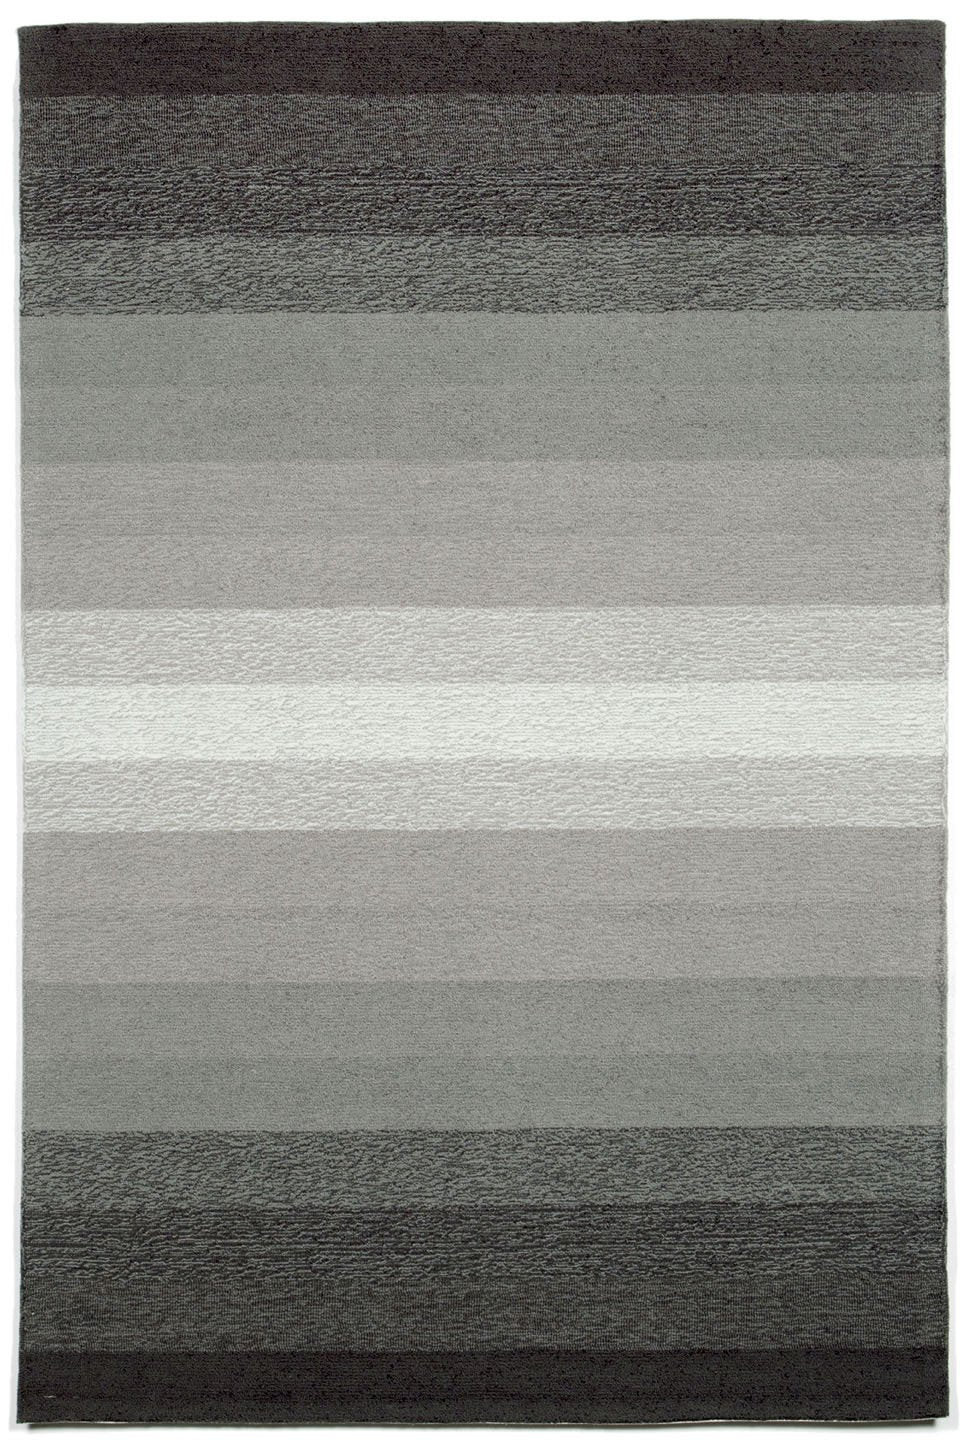 Trans-Ocean Imports RVL71225847 Ravella Collection Grey Finish Everywear Rug from Trans-Ocean